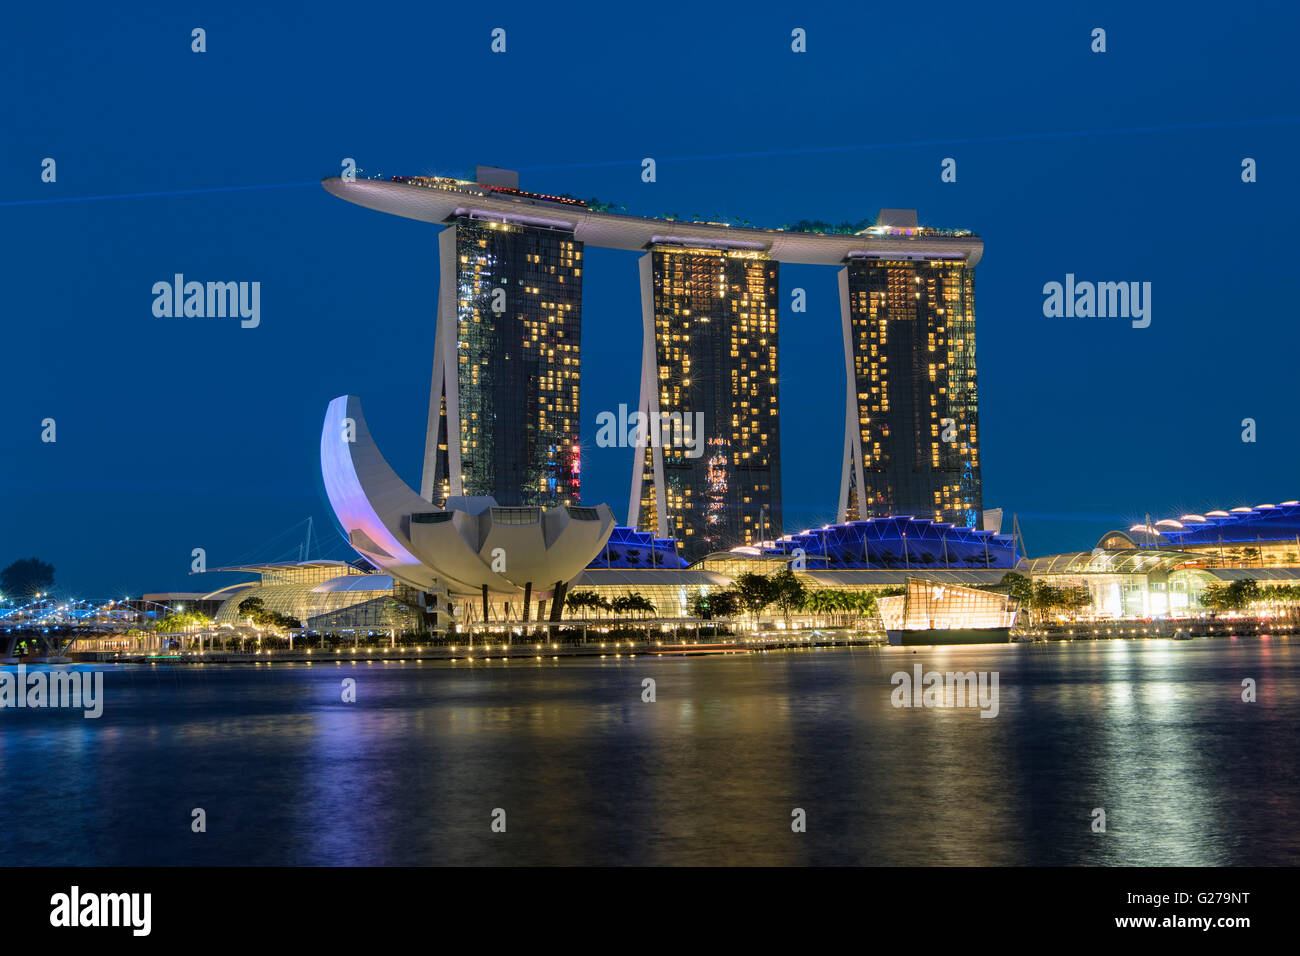 Marina Bay Sands hotel at night in Singapore - Stock Image